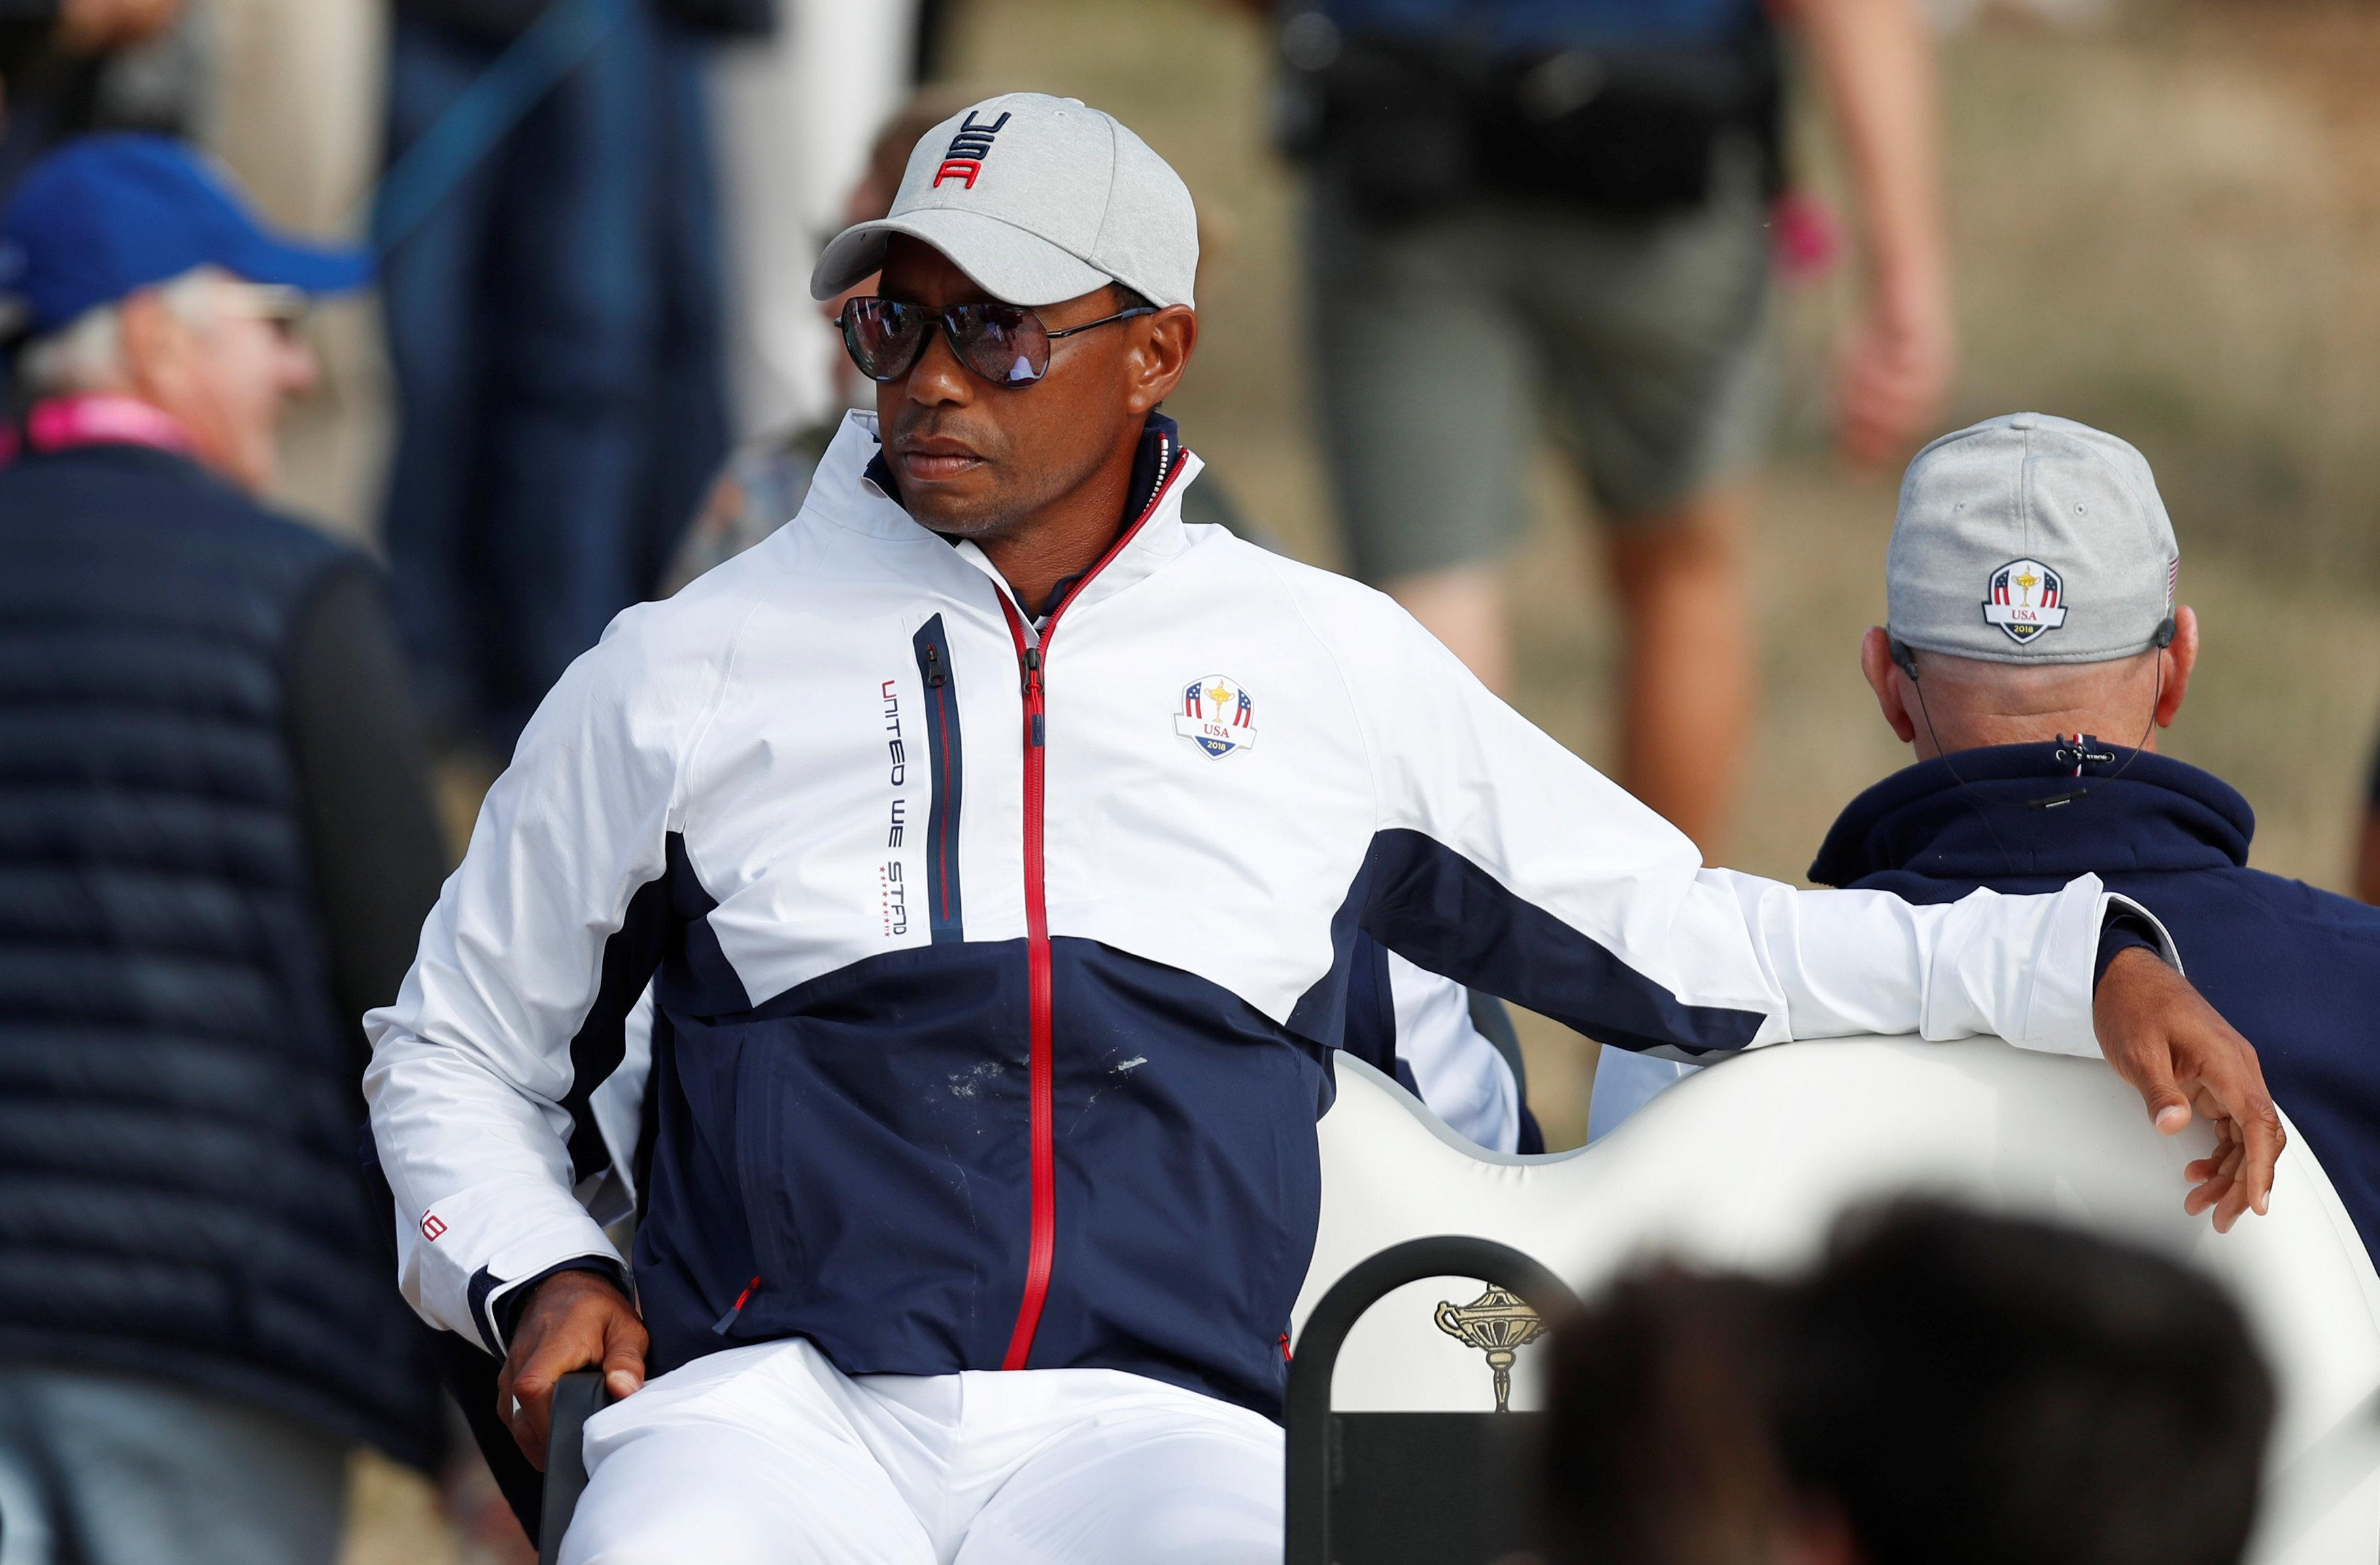 Woods was dropped for the Friday foursomes afternoon session but was on the course supporting team-mates